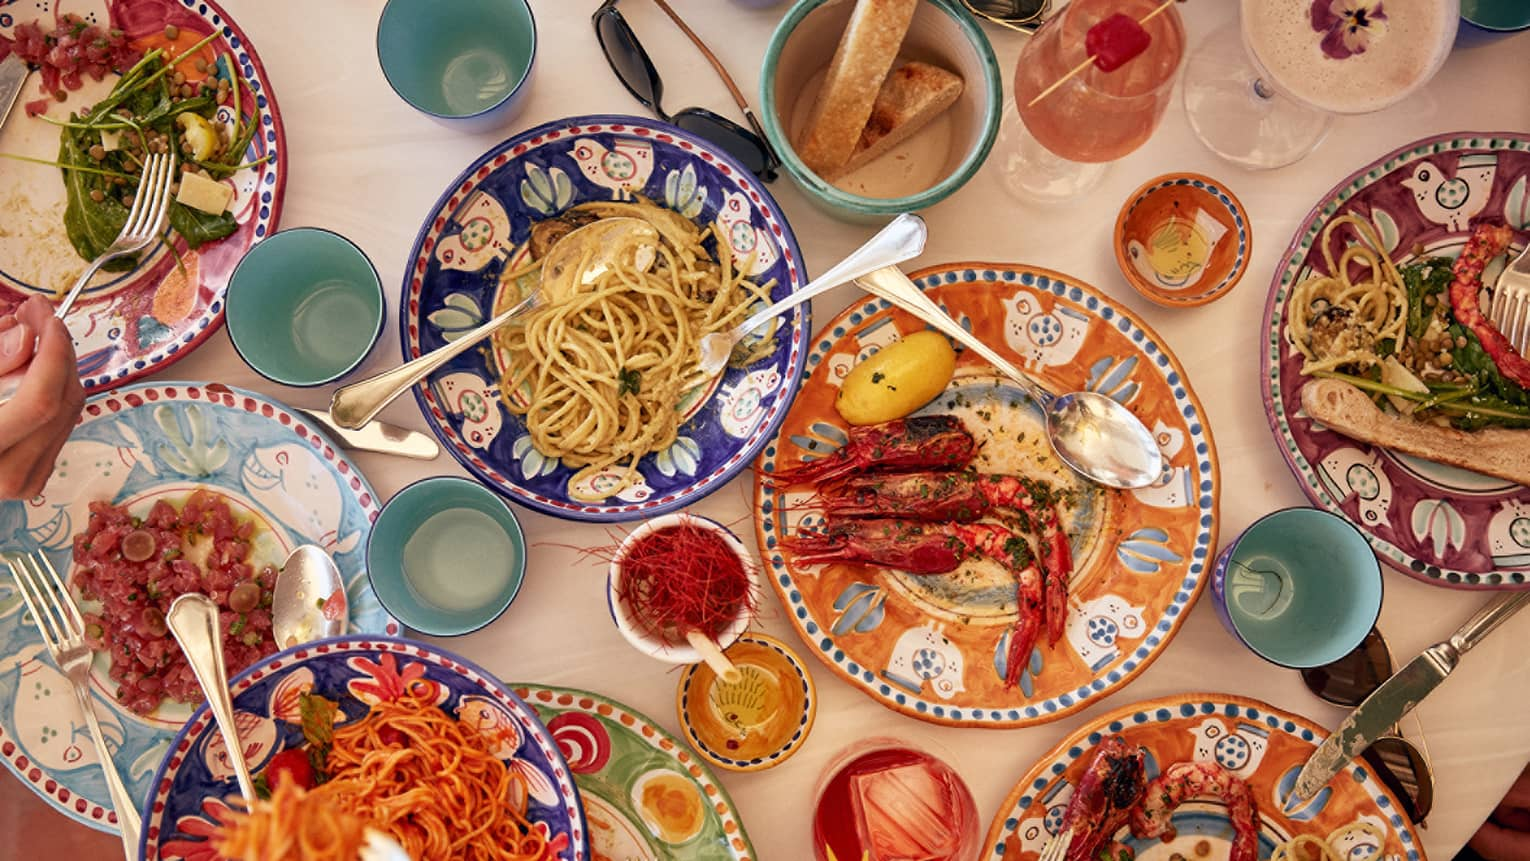 Smorgasbord of colorful plates boasting various types of seafood